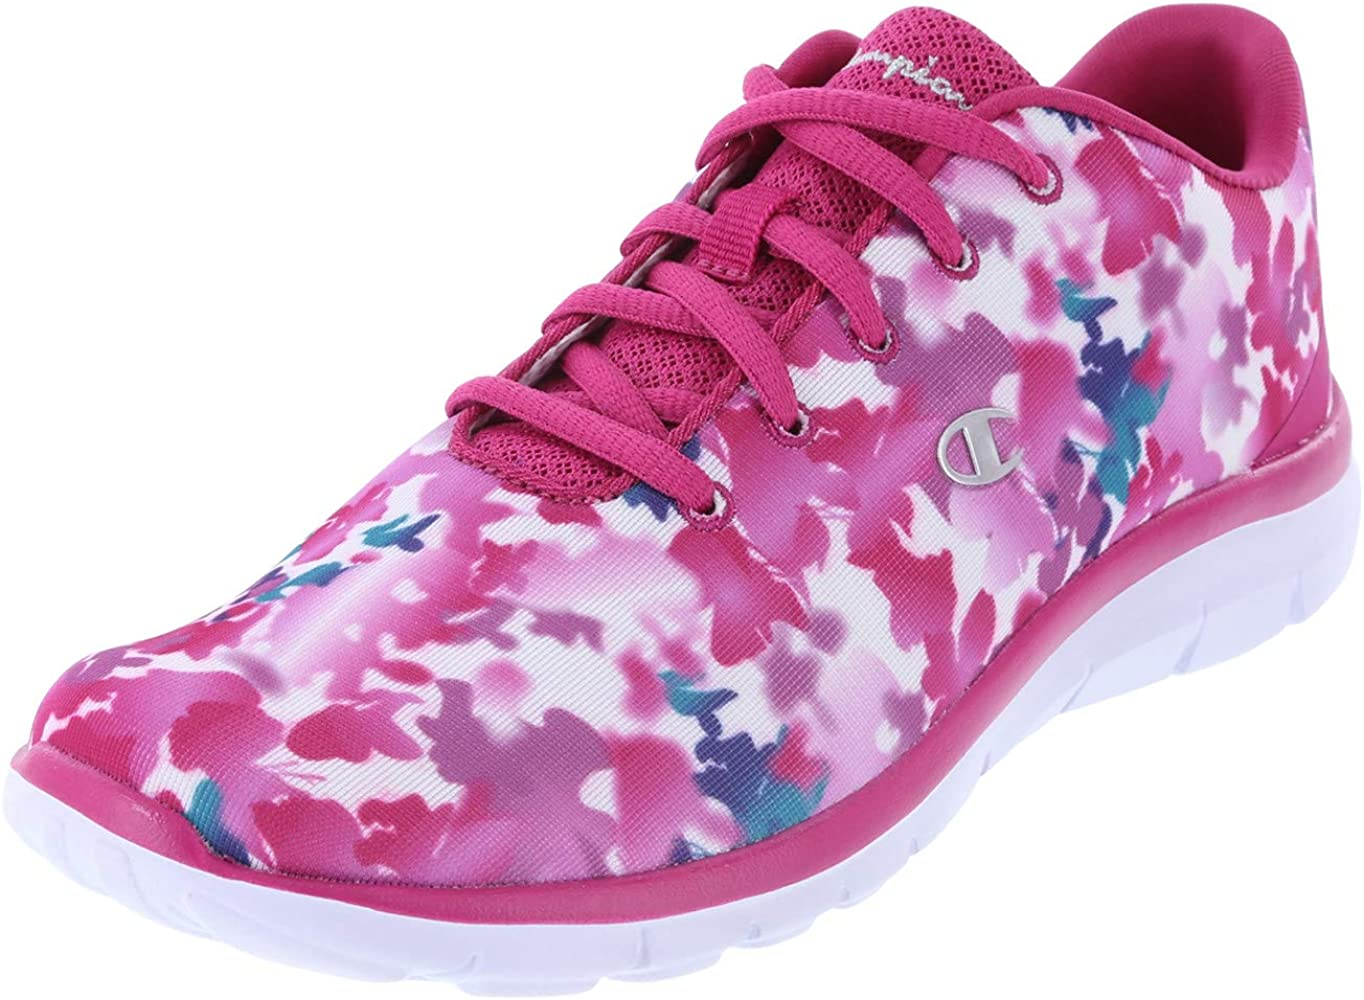 Champion Women's Pink Floral Gusto